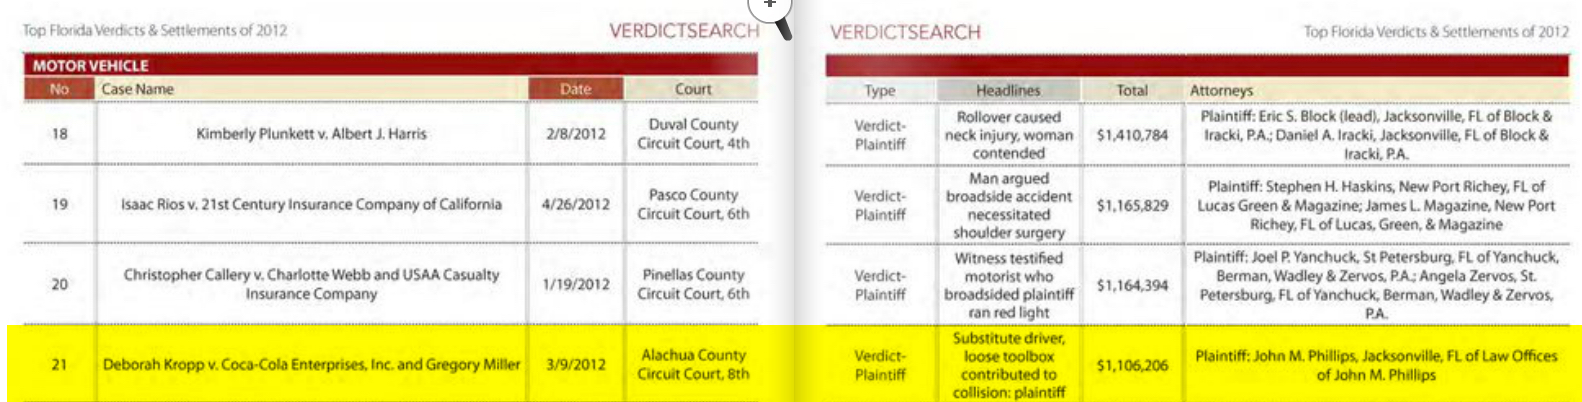 AWARD: Verdict Search: Top Florida Verdicts & Settlements of